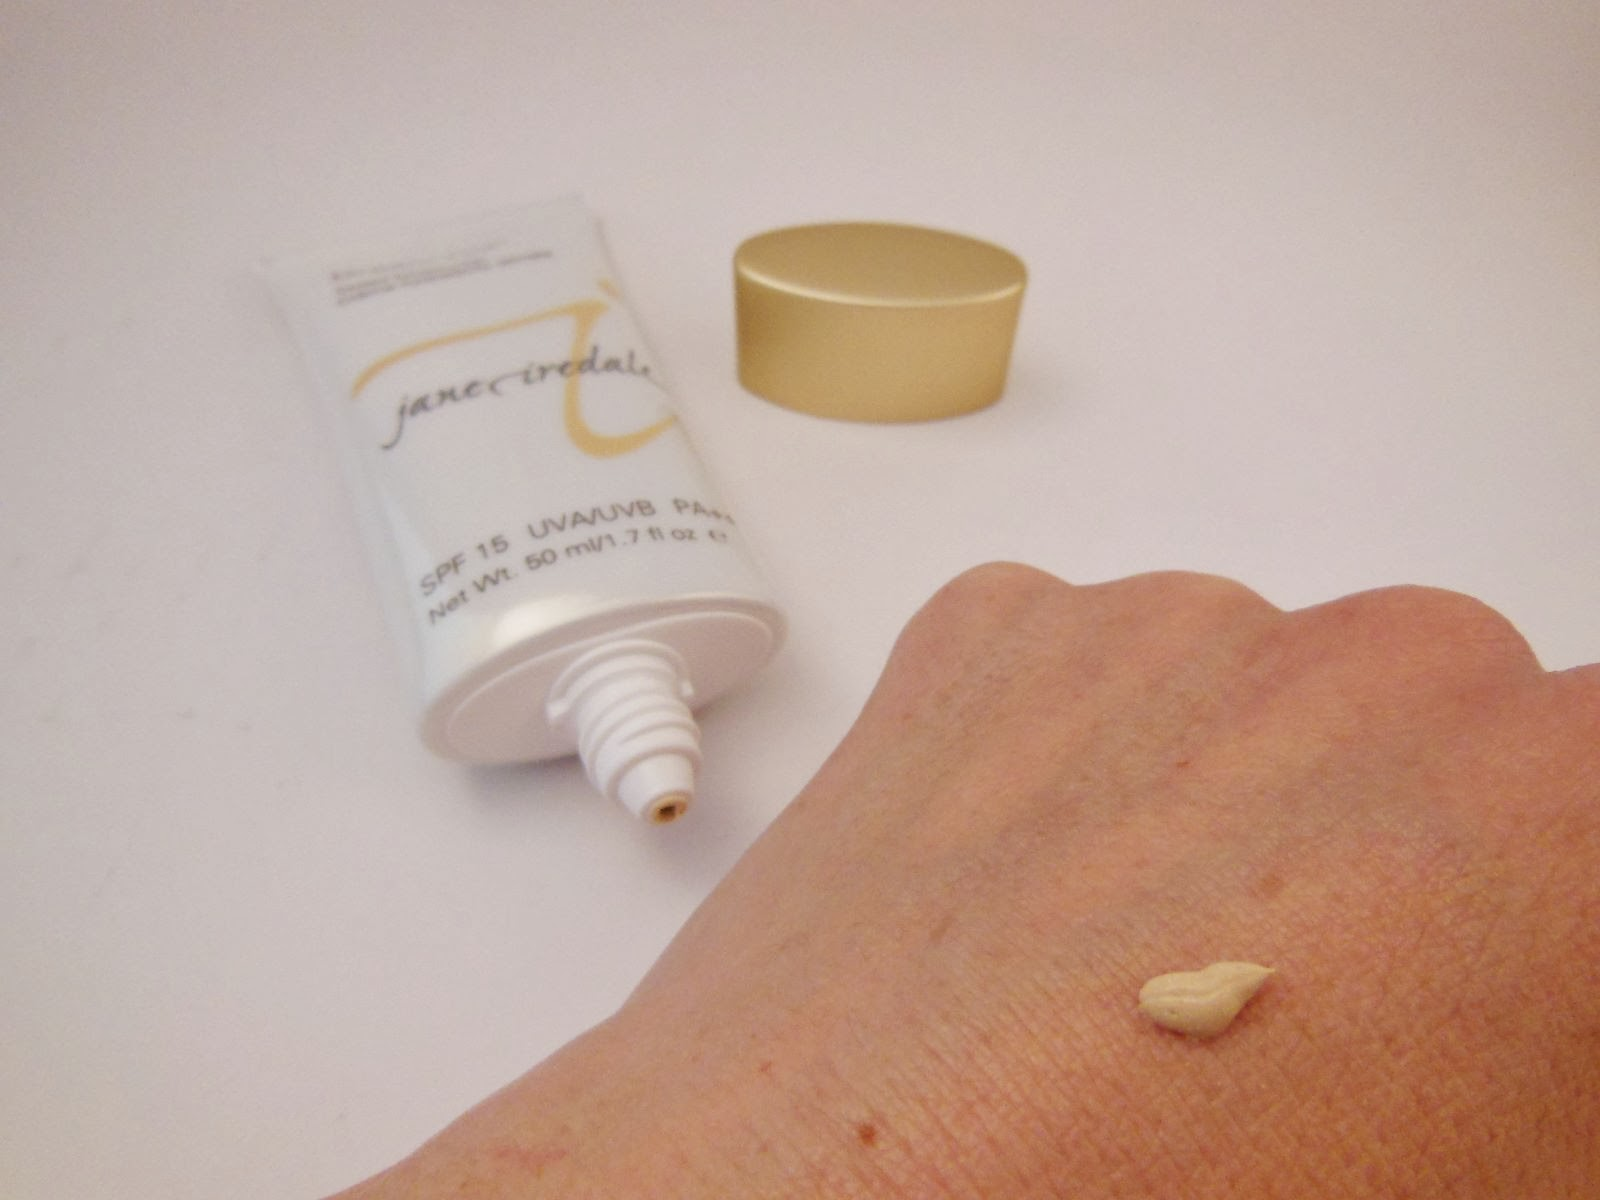 Dream Tint Tinted Moisturizer by Jane Iredale #3